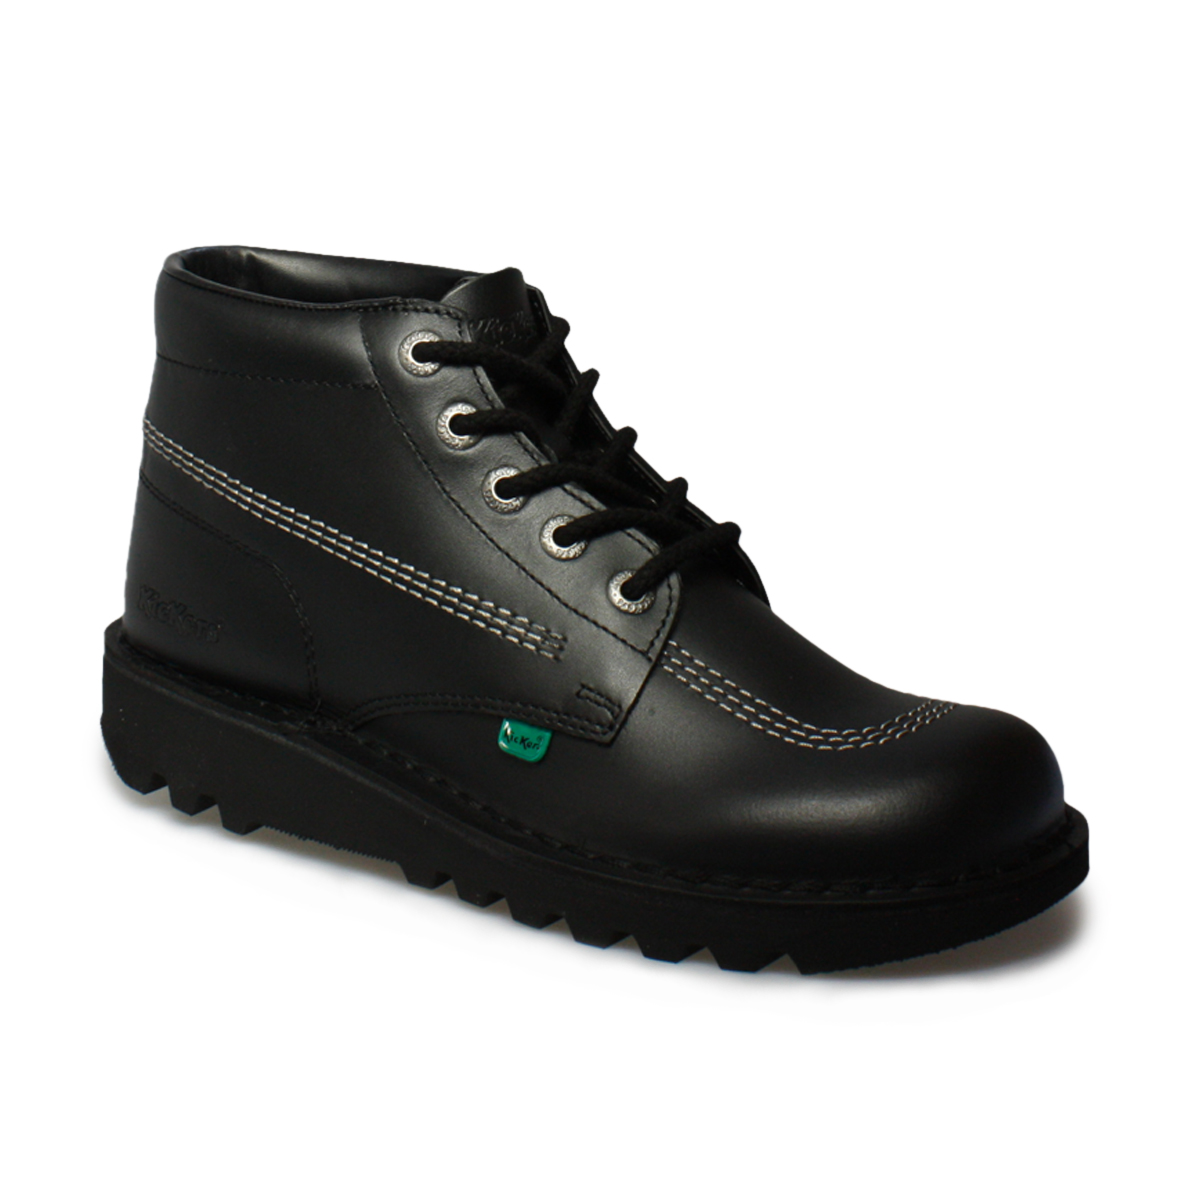 Kickers Kick Hi M Core Black Silver Leather School Shoes ...